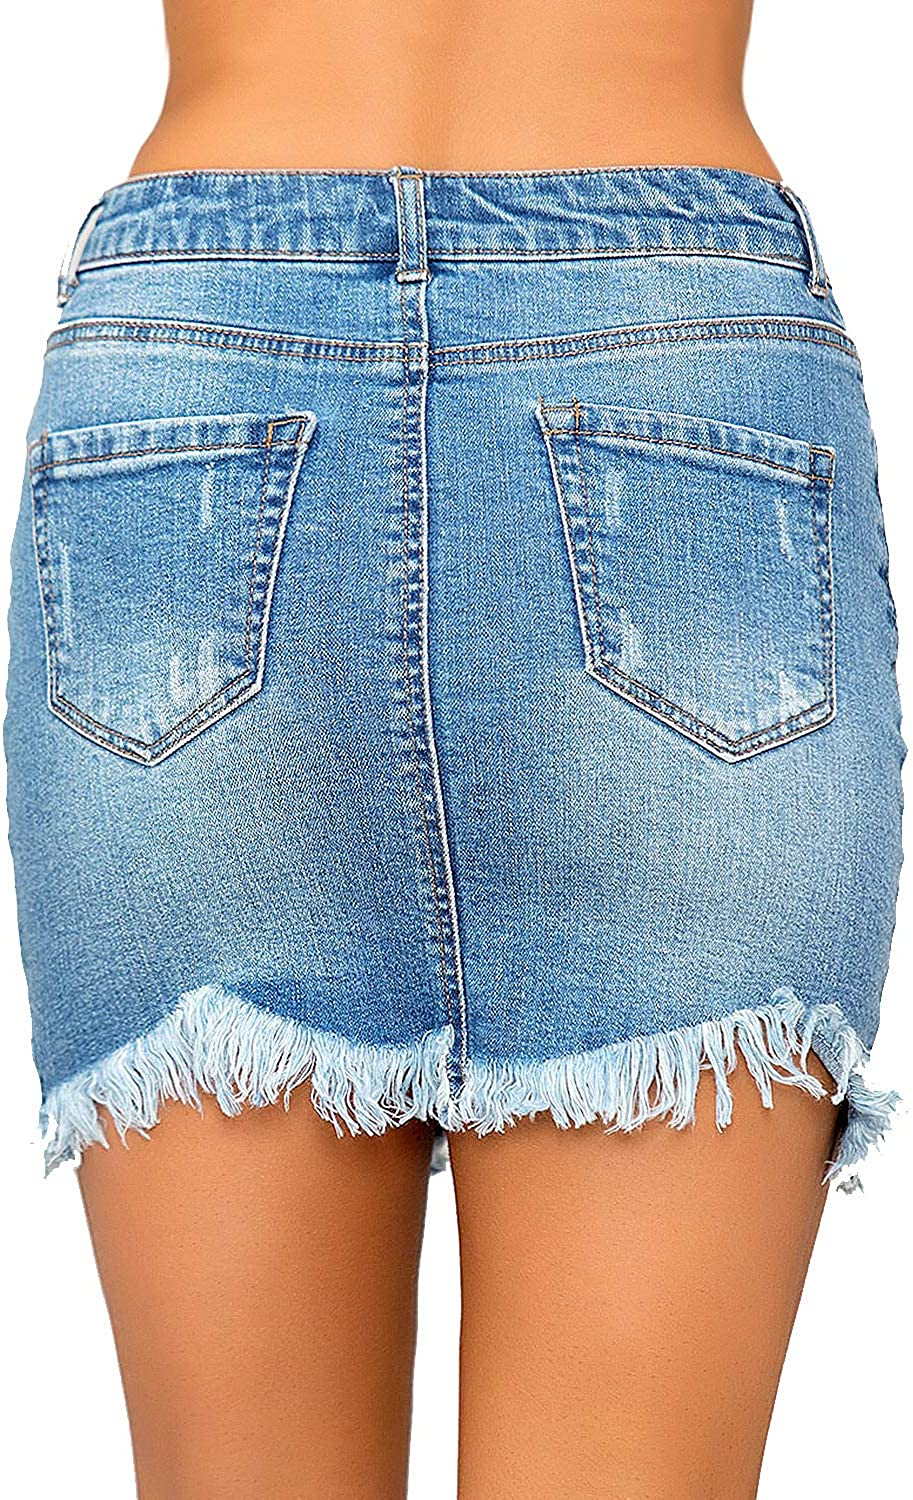 GRAPENT Women's Casual Mid Rise Ripped Pockets Distressed Short Denim Jeans Skirt